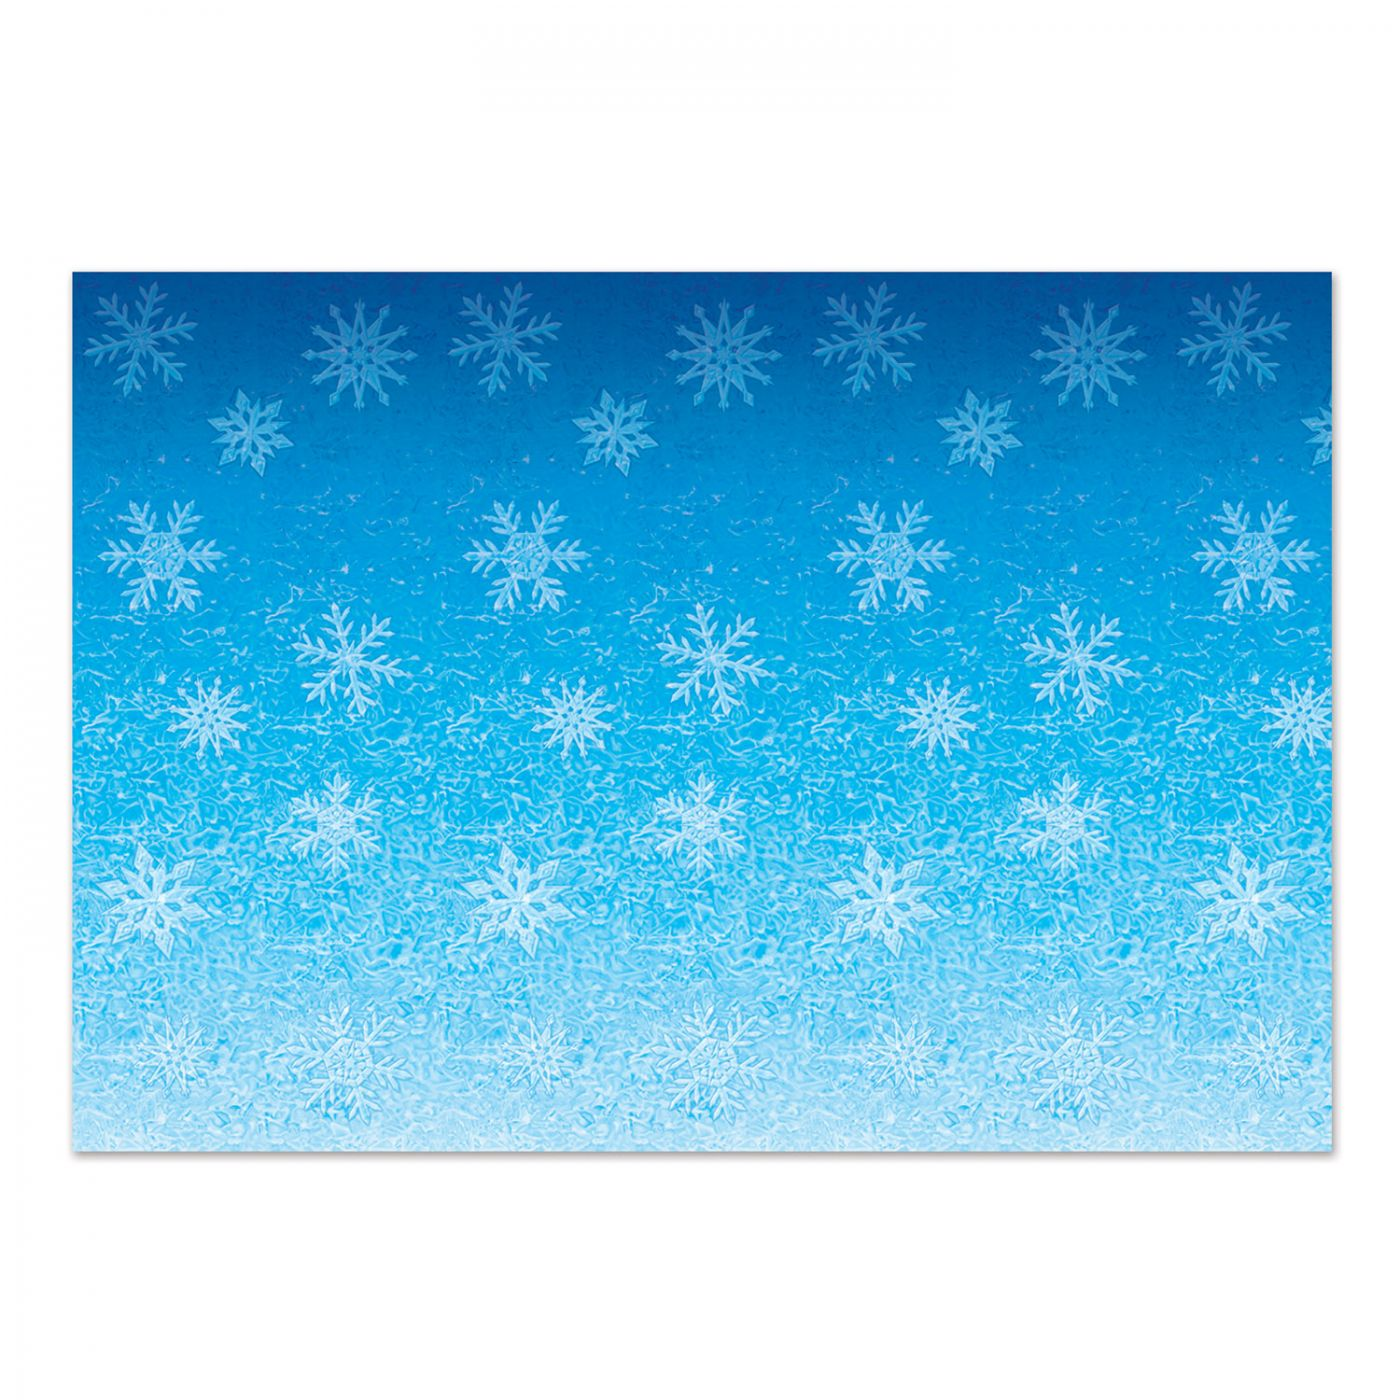 Snowflakes Backdrop (6) image